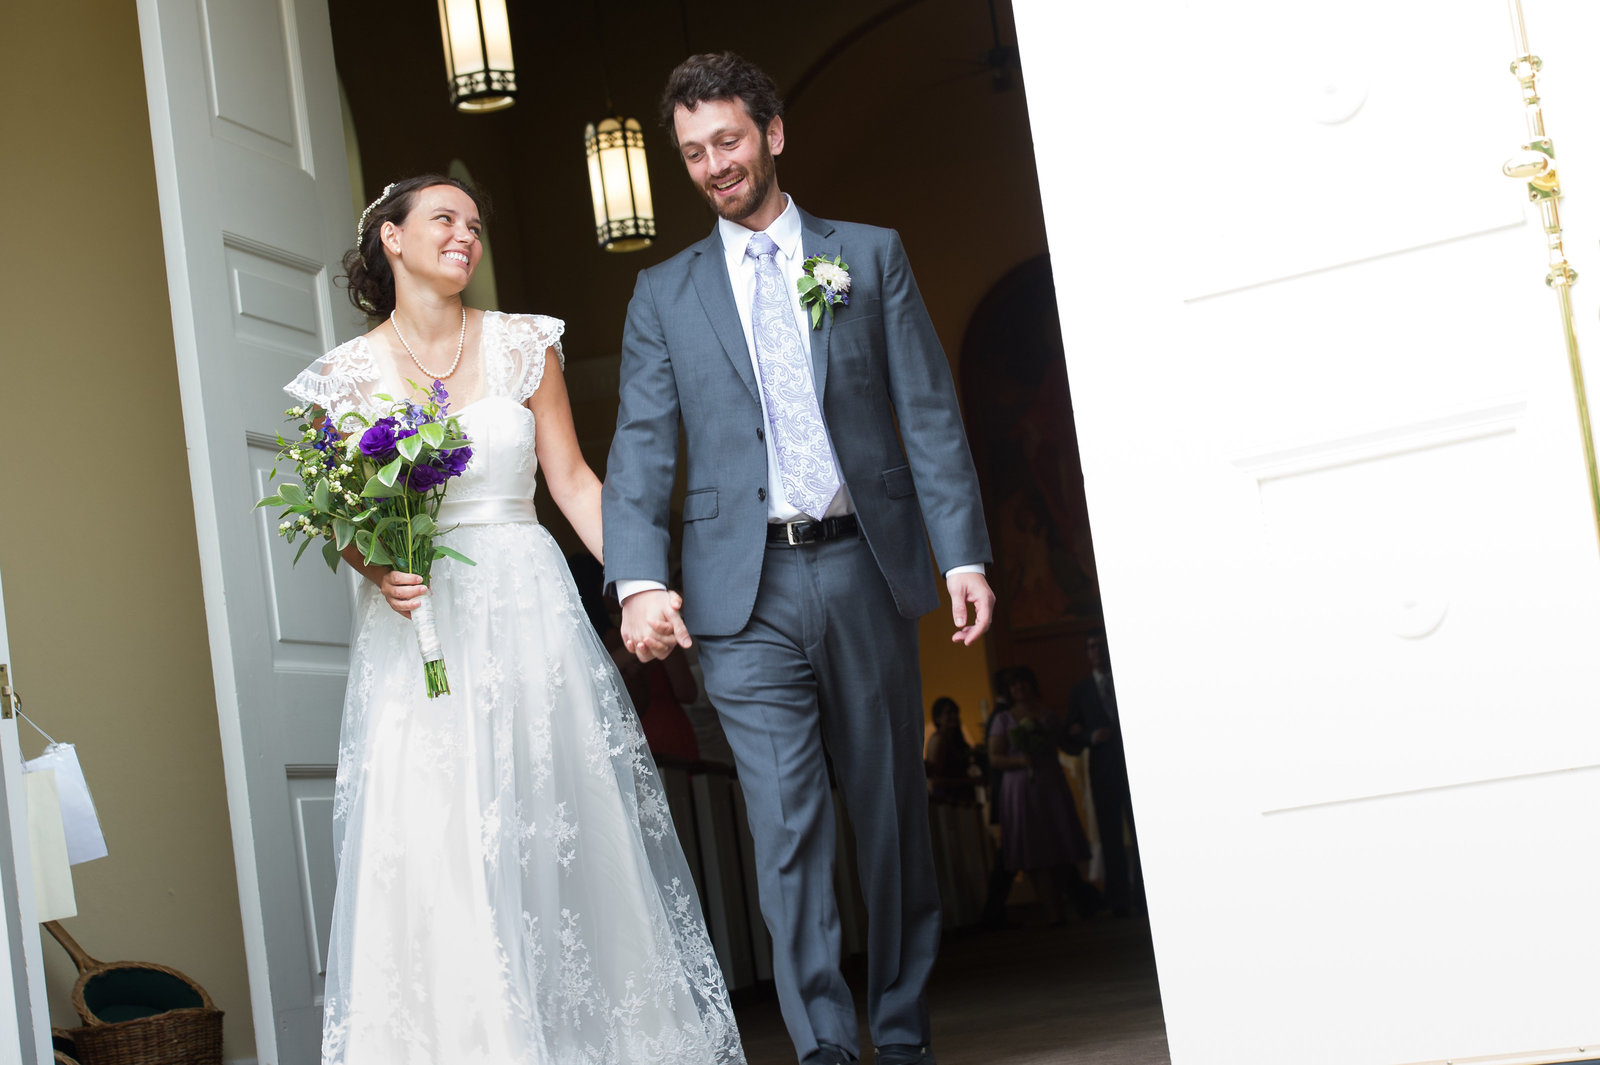 Bride and groom leave church smiling after ceremony, Charlottesville, VA.